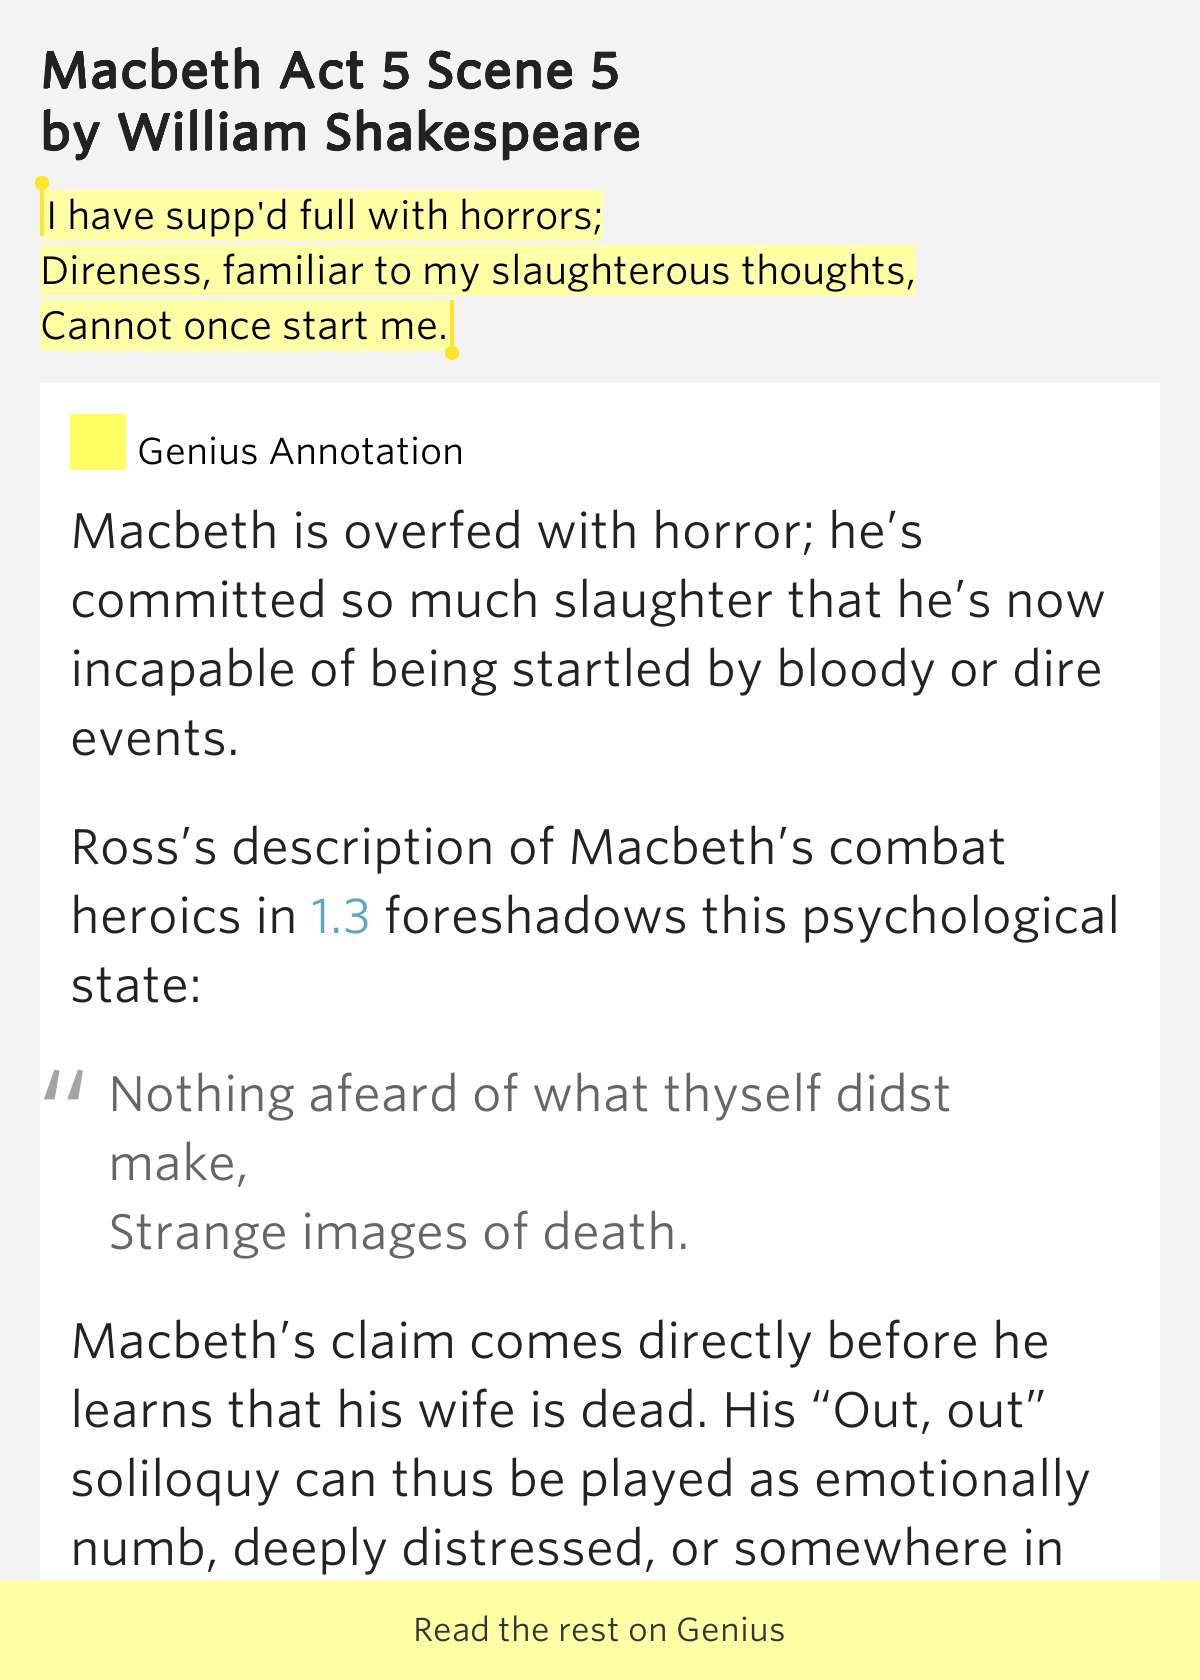 contradiction in act 1 of macbeth Macbeth act 1 summary explained key quotes are kept short with easy to understand analysis english subtitles and animated characters reinforce comprehensio.